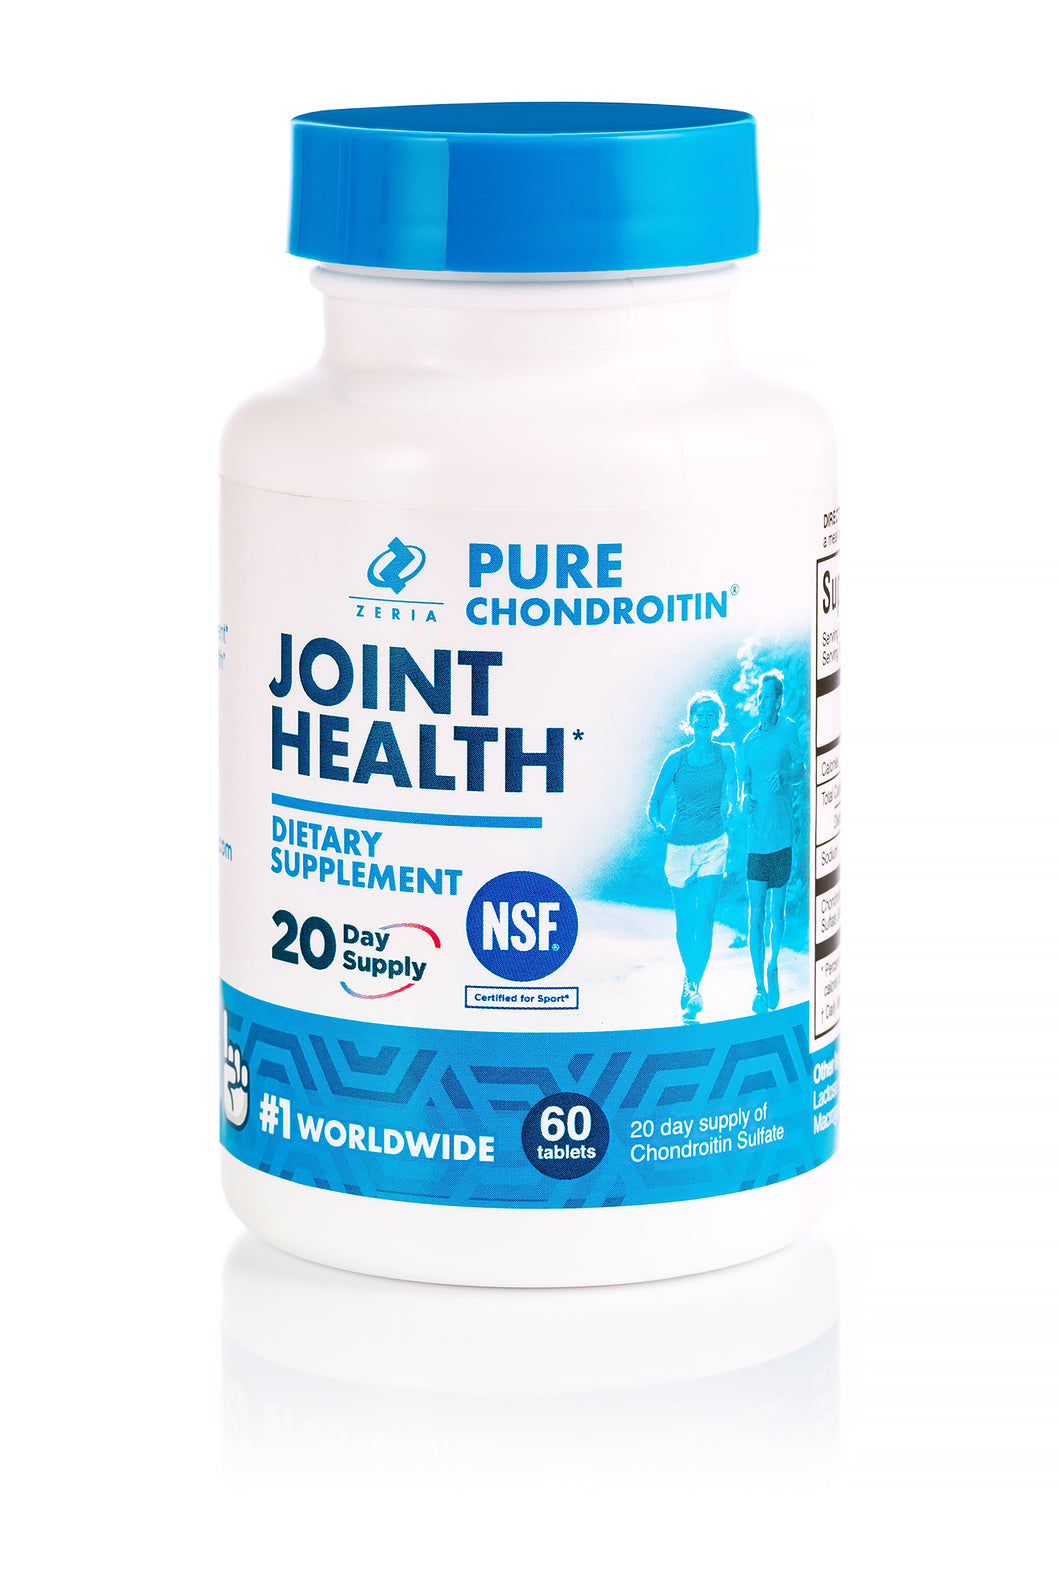 Pure Chondroitin 60 Tablets